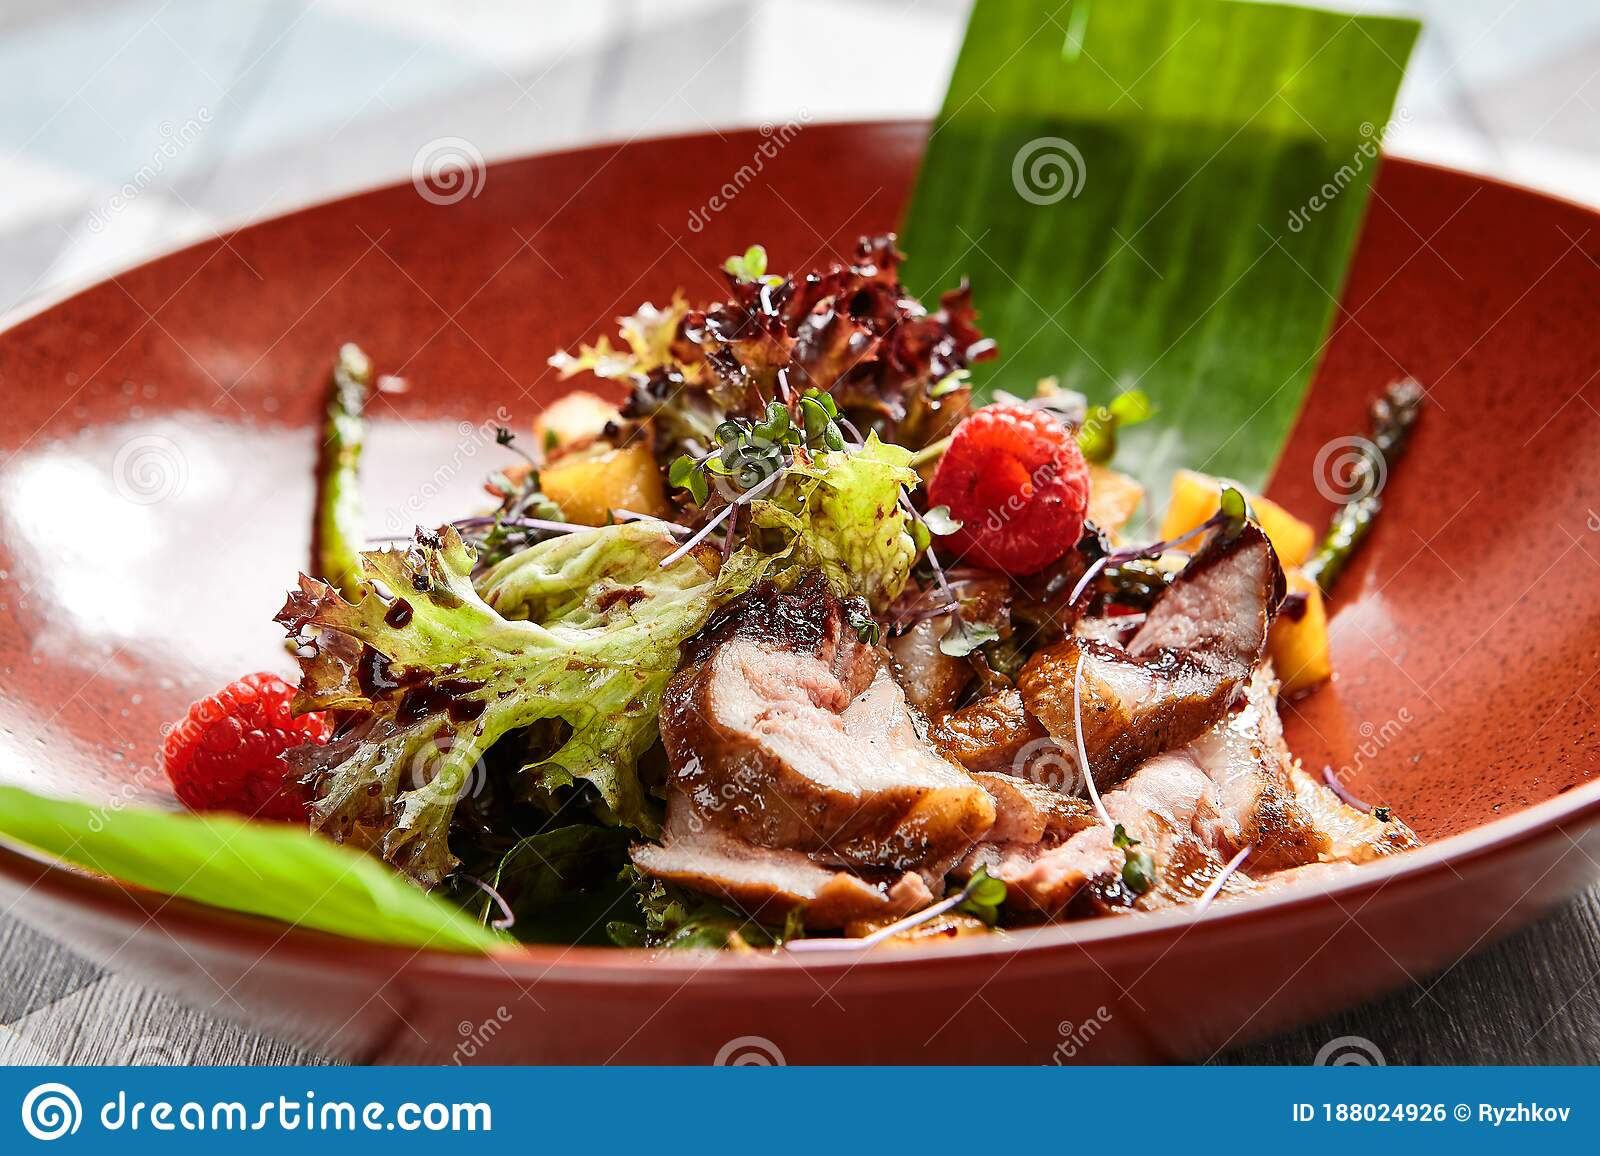 Fancy Restaurant First Meal Course Stock Photo Image Of Duck Wooden 188024926